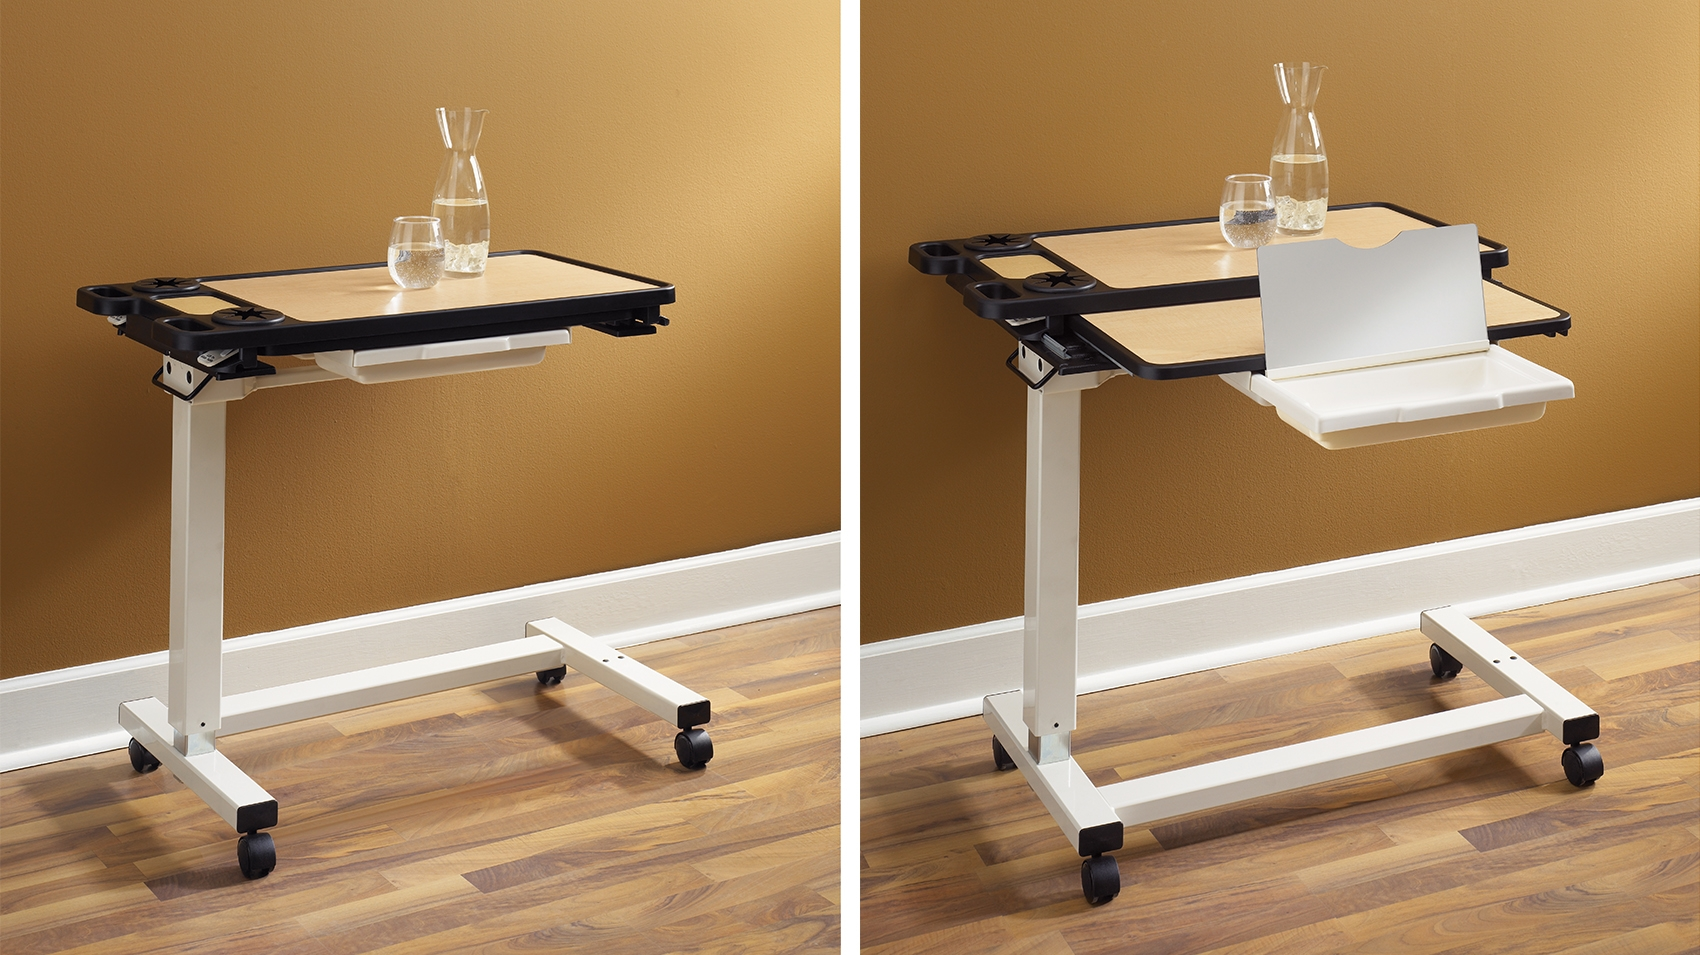 Over the bed table - Featuring A Classic And Simple Design Carolina S Overbed Table Is A Perfect Solution For Any Patient Area With Two Different Styles Featuring Multiple